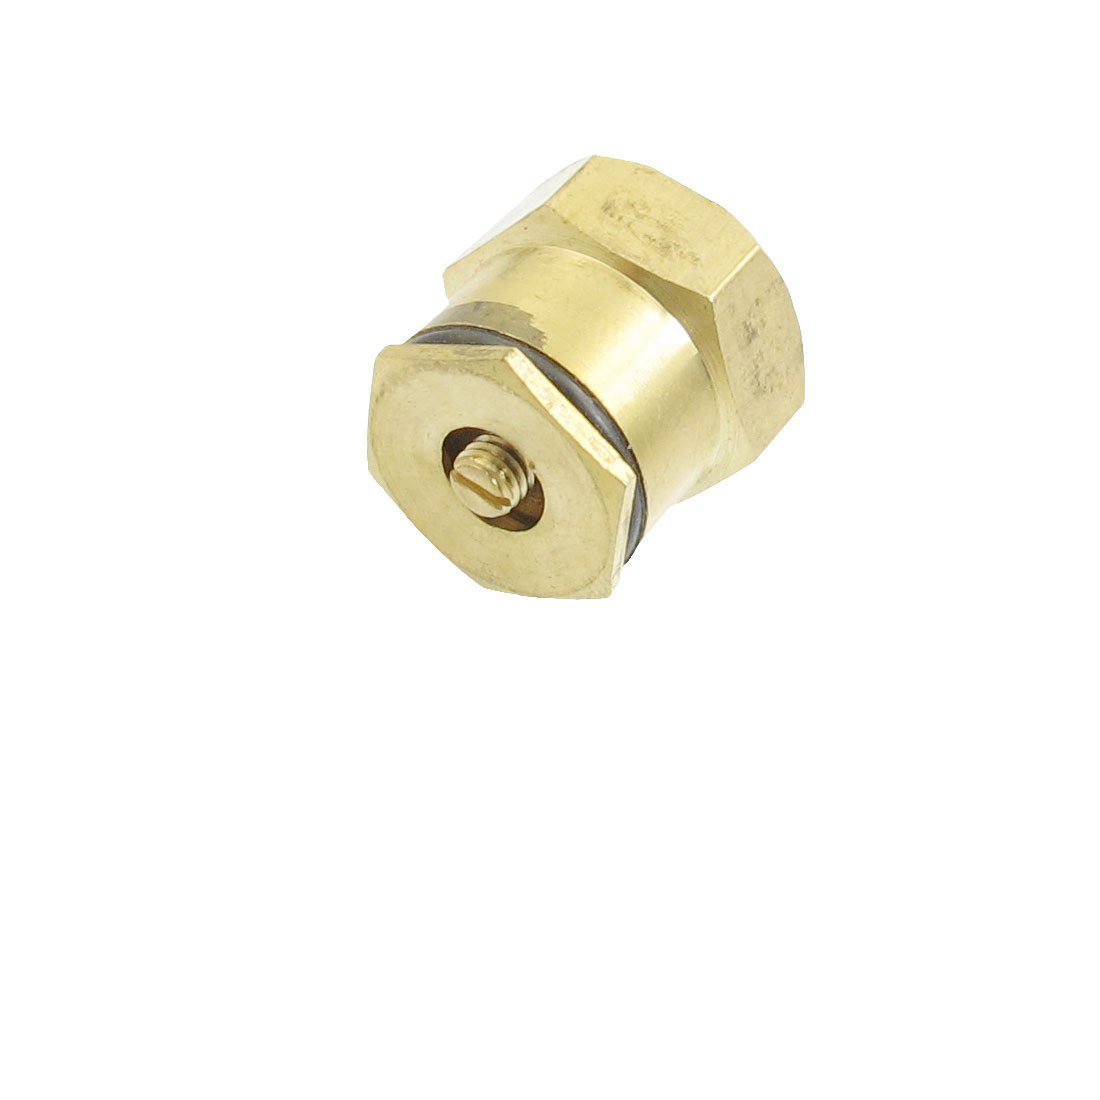 "Gold Tone Metal 1/2"" Female Thread Needle Jet Pipe Spray Nozzle"